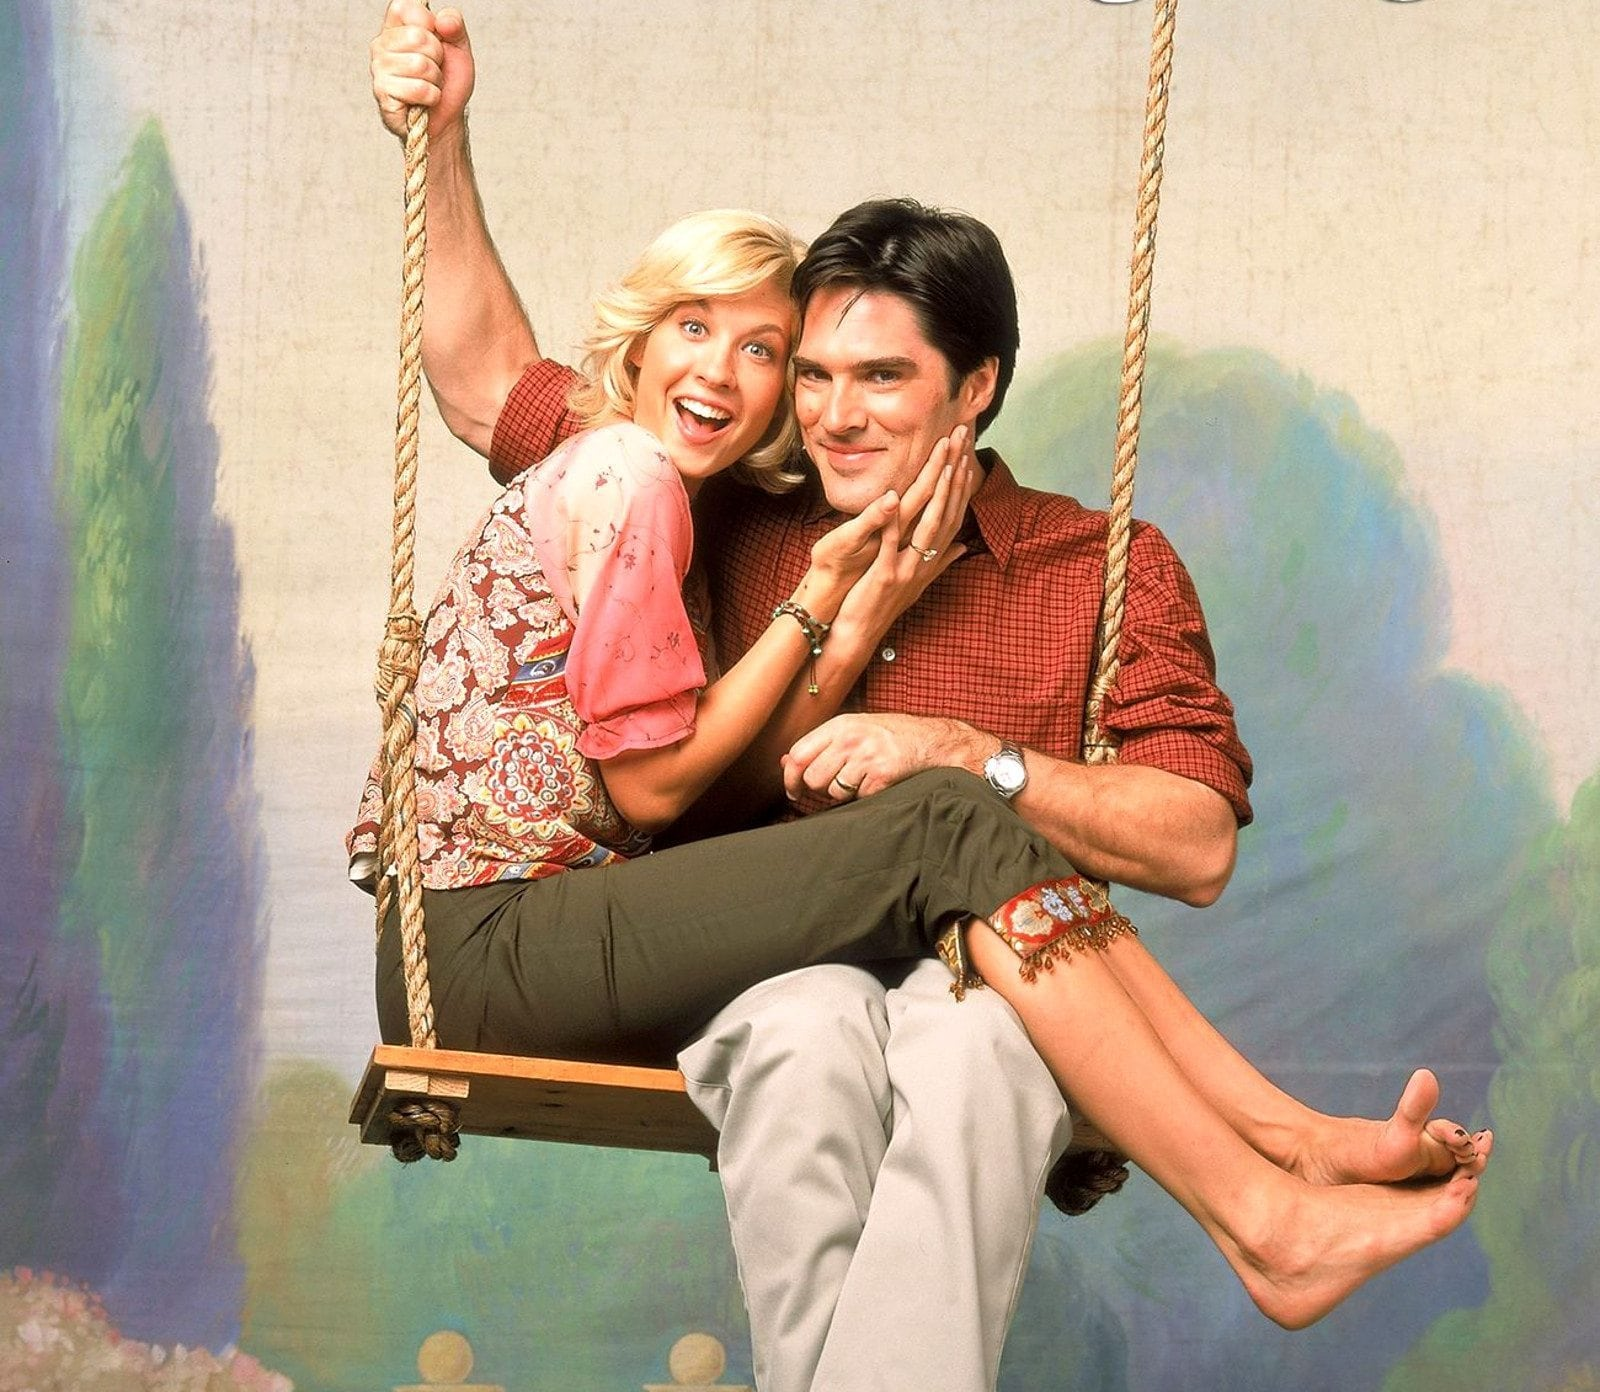 Photo of Jenna Elfman and Thomas Gibson from the television series DHARMA & GREG.